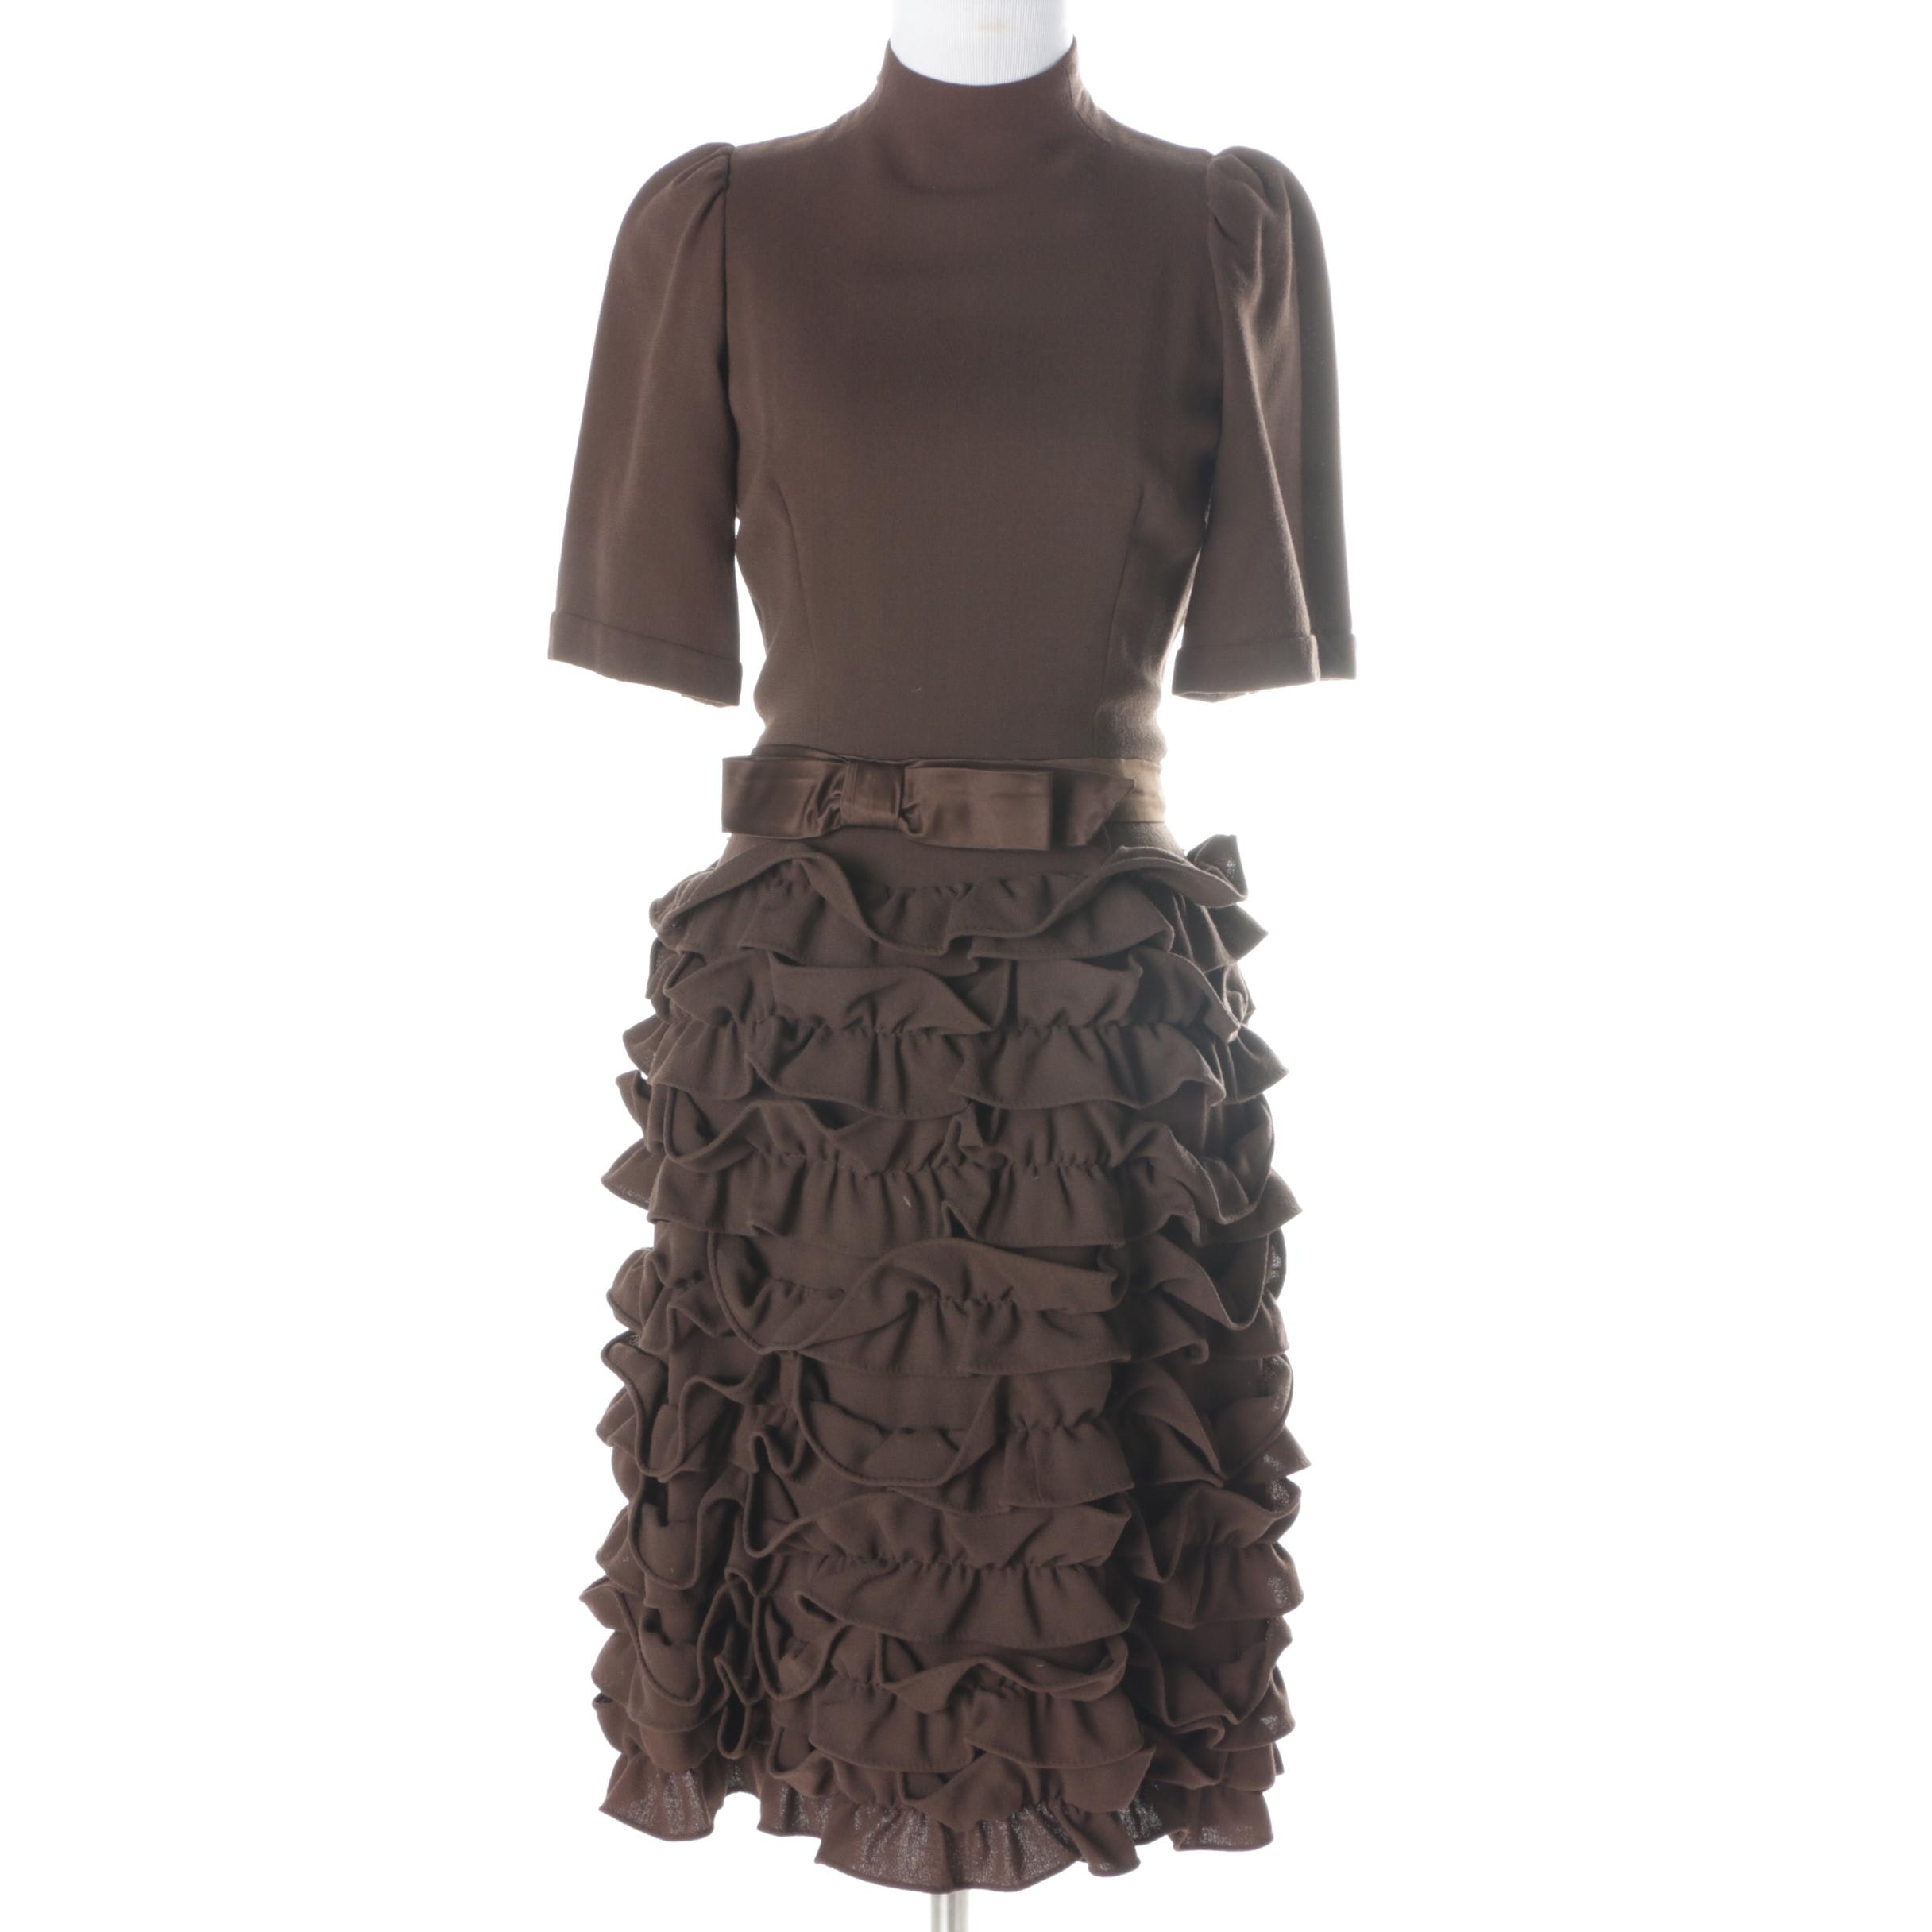 Vintage Cardinali Ruffled Wool Crepe Sample Dress